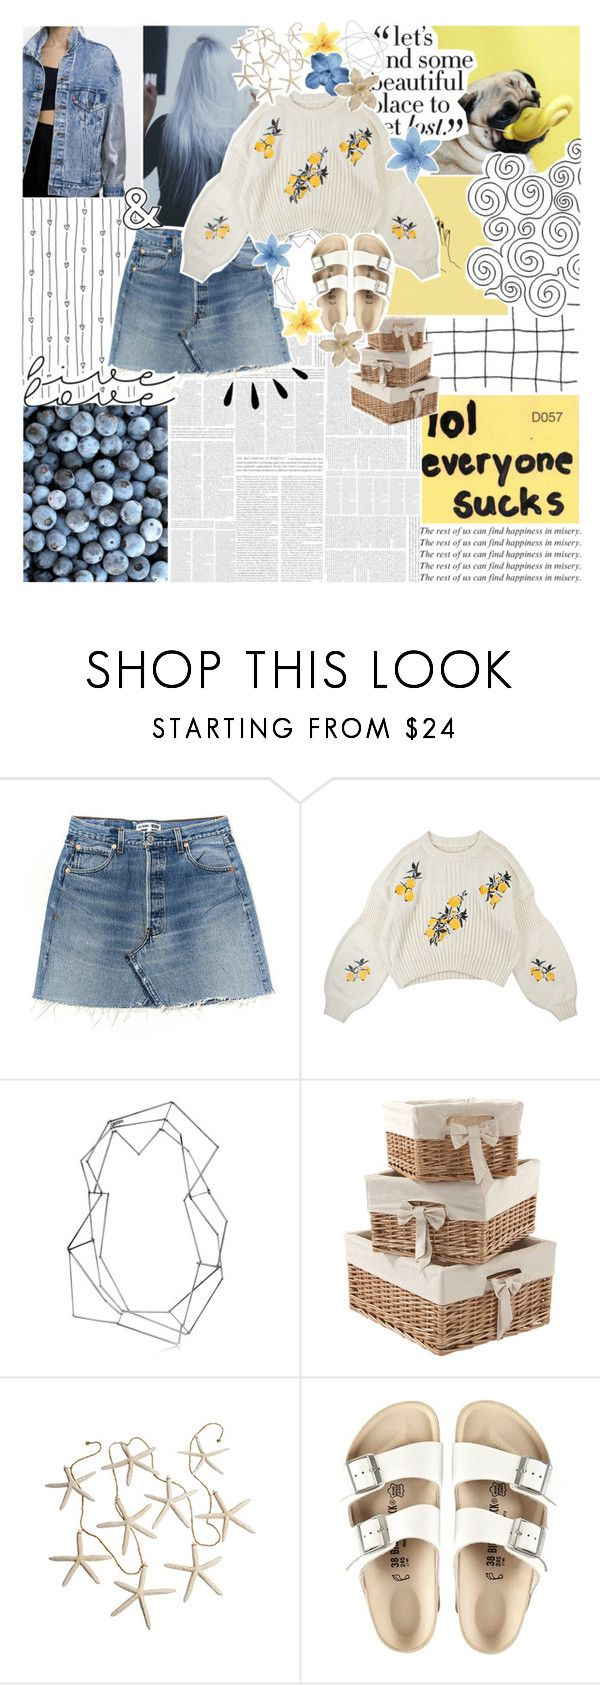 """""""750: i guess i never thought i'd have to choose between paradise and you"""" by lili-is-a-koala ❤ liked on Polyvore featuring GET LOST, BANCI GIOIELLI, Mamas & Papas, Birkenstock and Old Navy"""